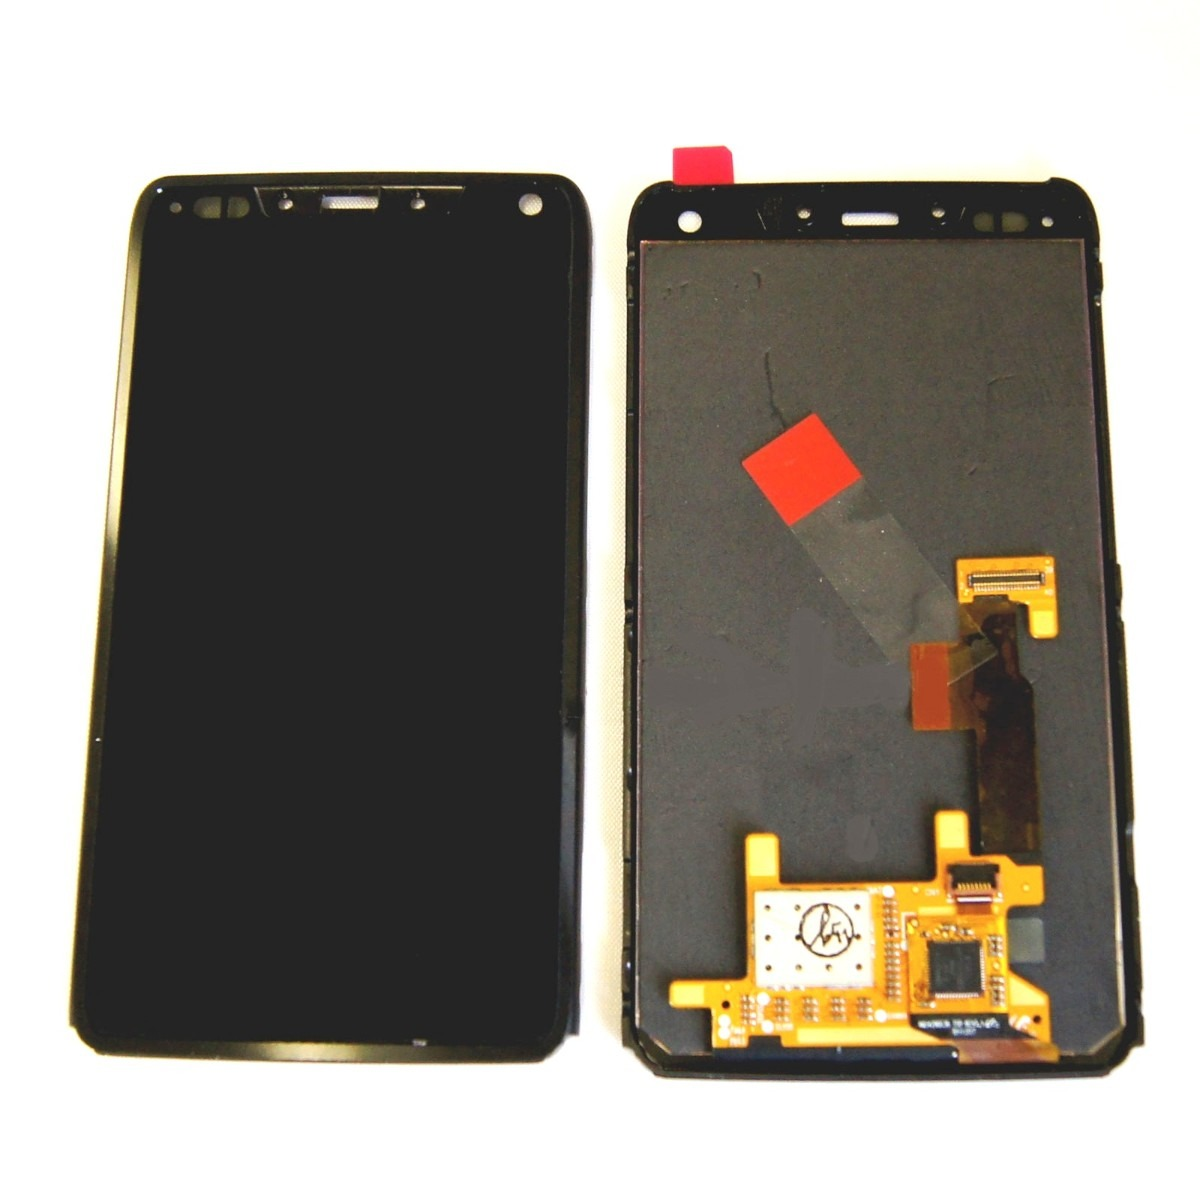 Tela Touch Display Lcd Motorola Razr I Xt890 Original